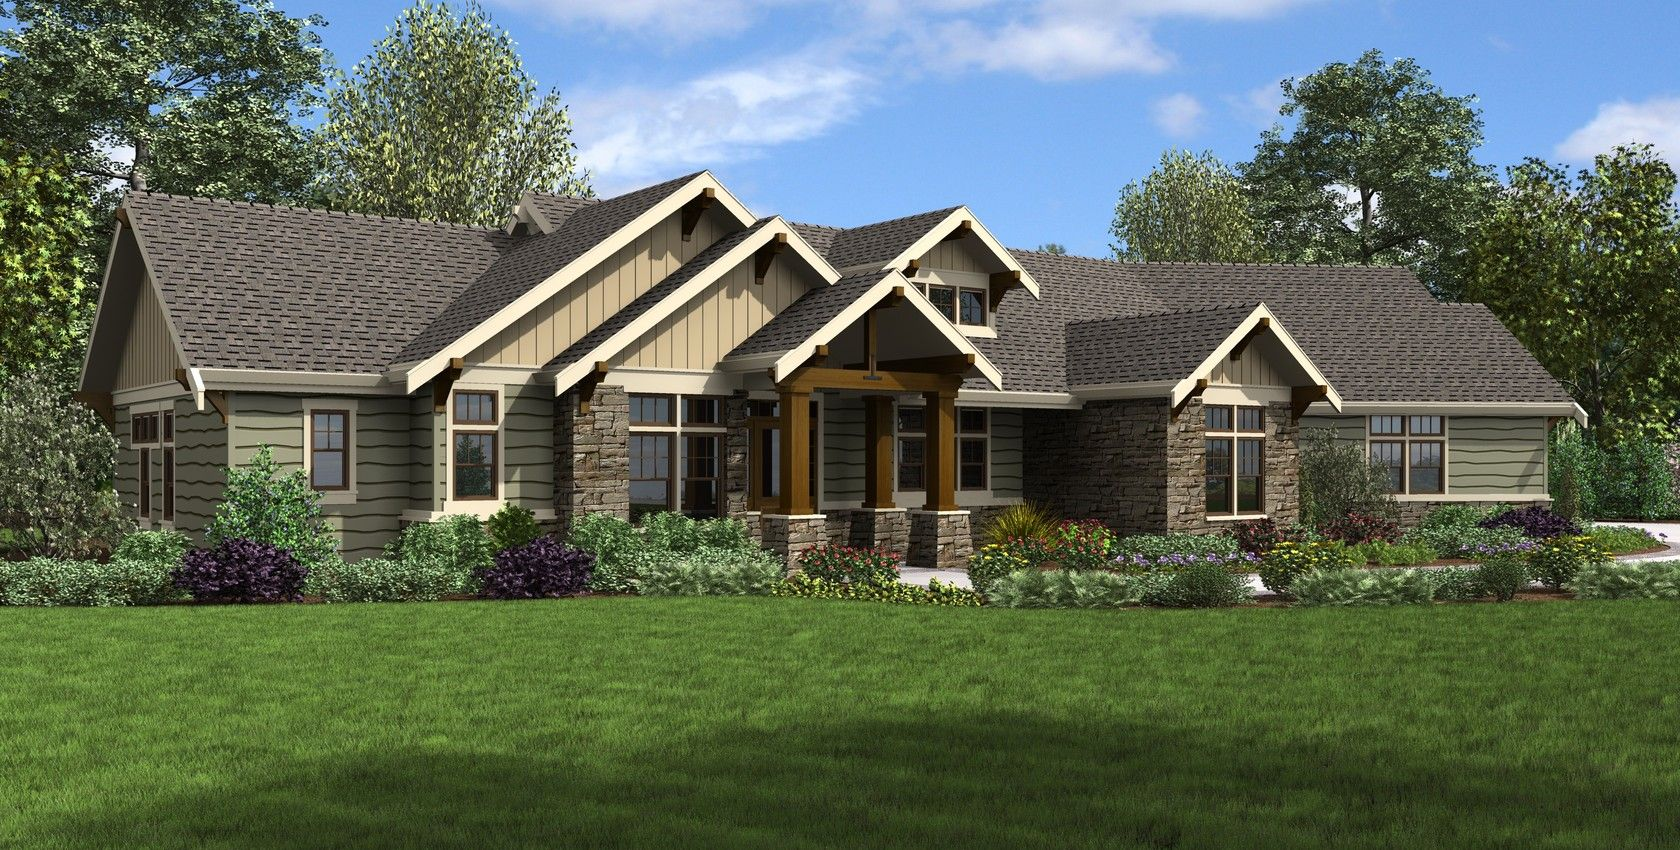 Image For Arapahoe Popular Amenities Such As Vaulted Spaces Great Rear Porch 8513 Ranch Style House Plans Ranch House Plans Craftsman Style House Plans